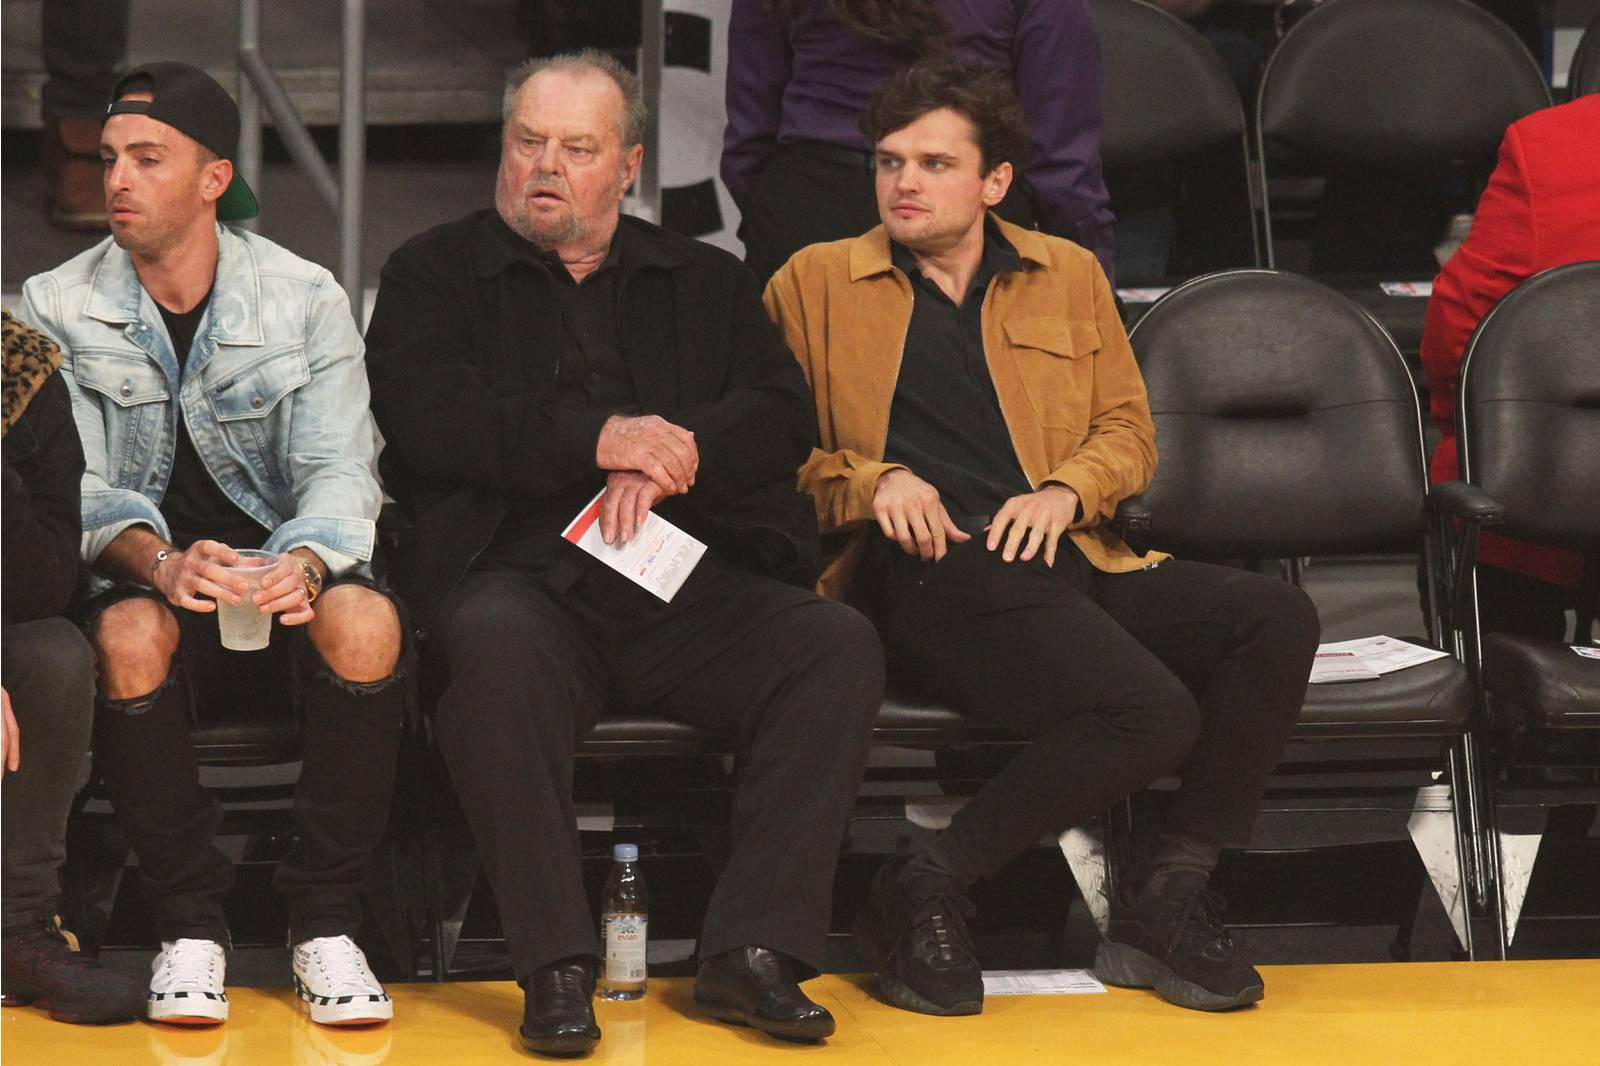 Jack Nicholson 81 Catches Lakers Game With 26 Year Old Son Ray In Rare Outing If you like it check out samuel l jackson and tony montanas songs. https www yahoo com entertainment jack nicholson 81 catches lakers game 26 year old son ray rare outing 180628786 html